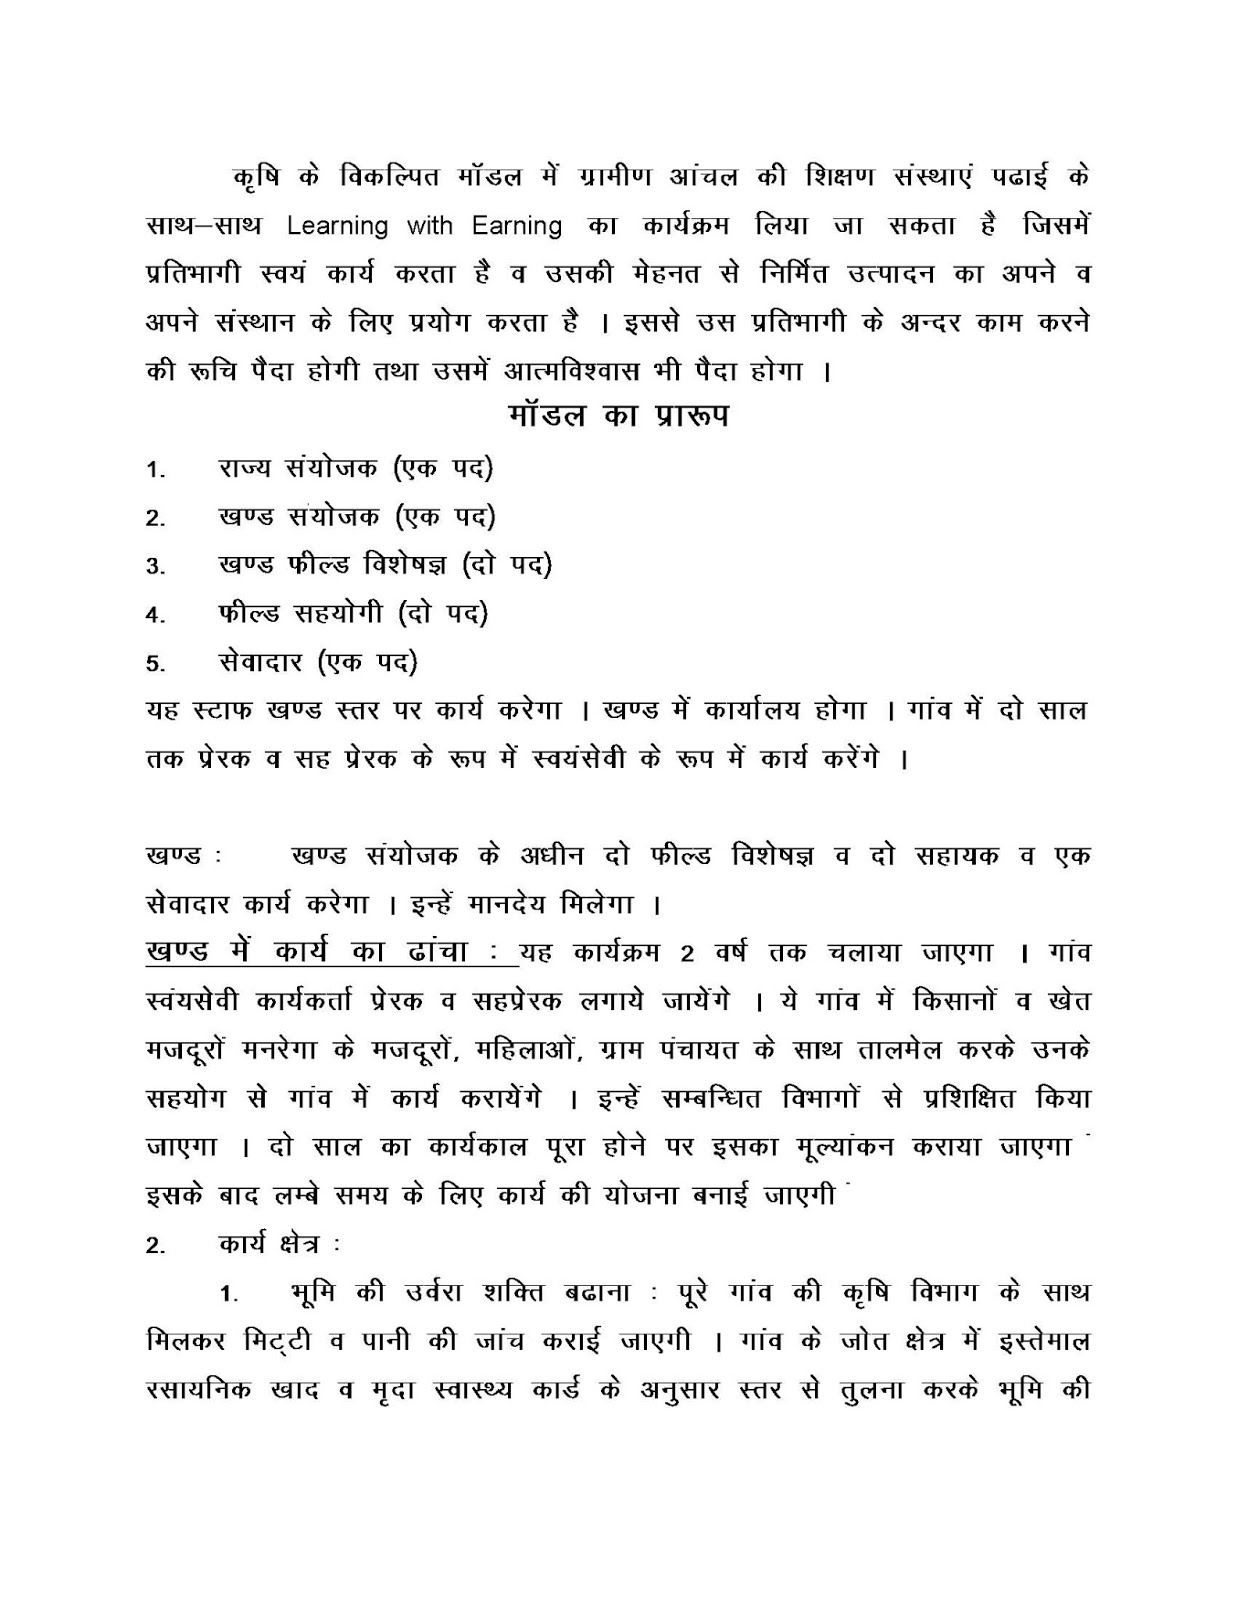 005 Hindi252bwork252bdr 252brajinder252bsingh Page 8 Lyric Essay Unique Example Examples Analysis Song Full